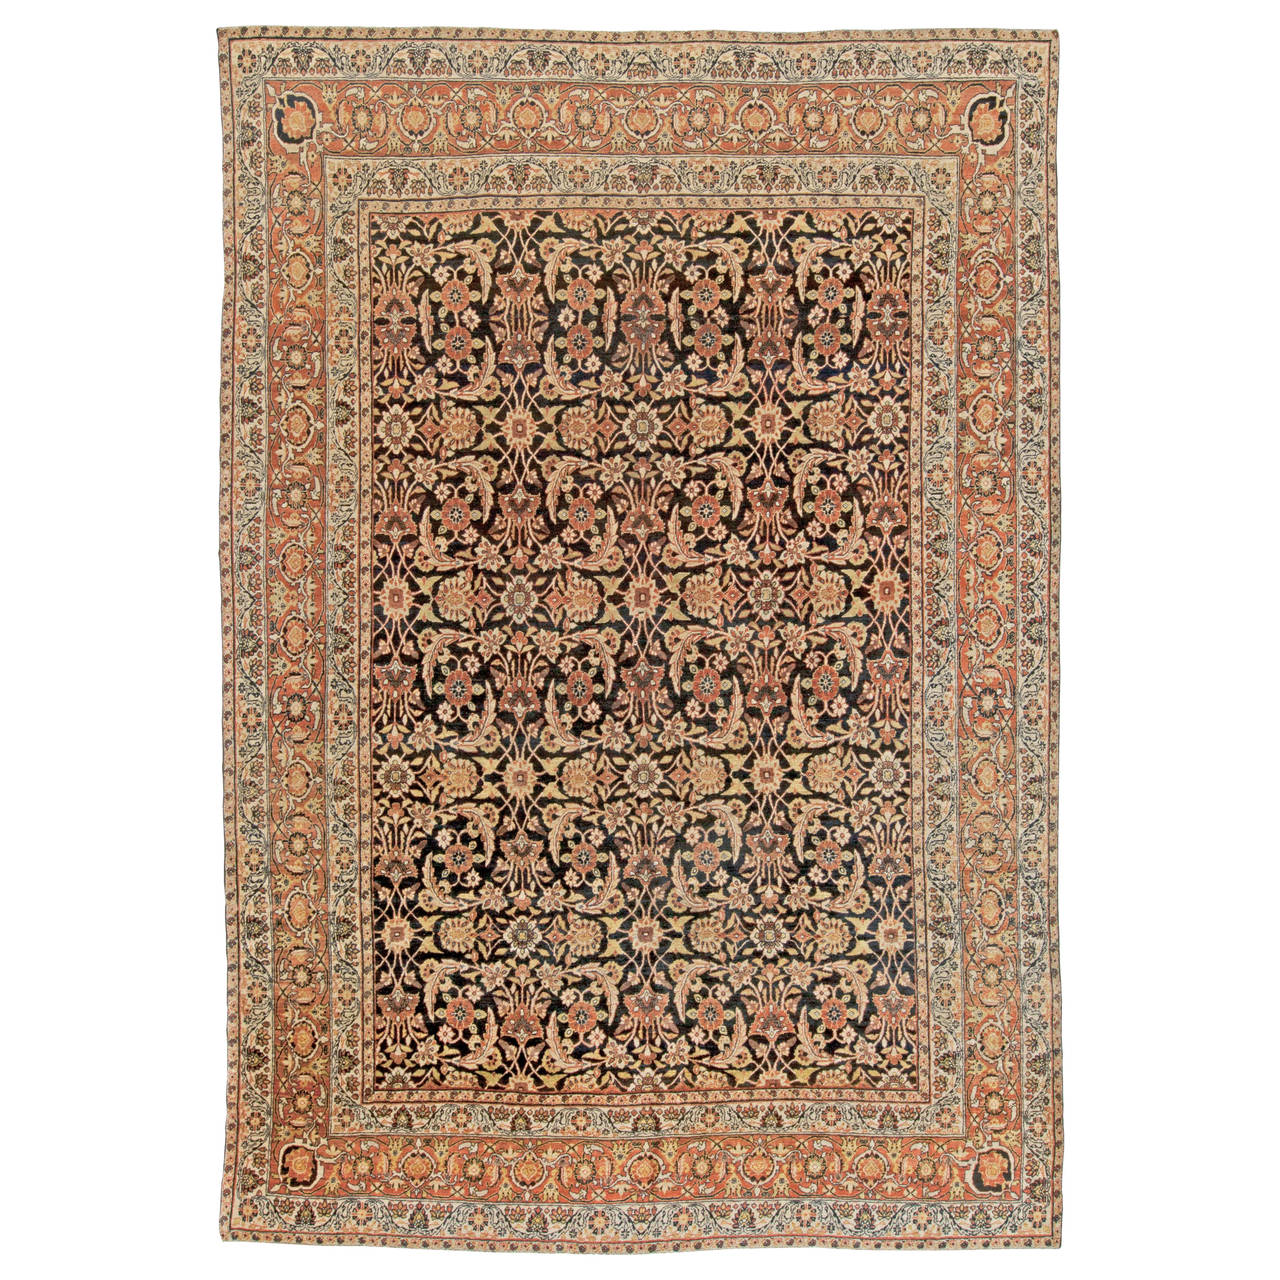 antique kirman rug at 1stdibs